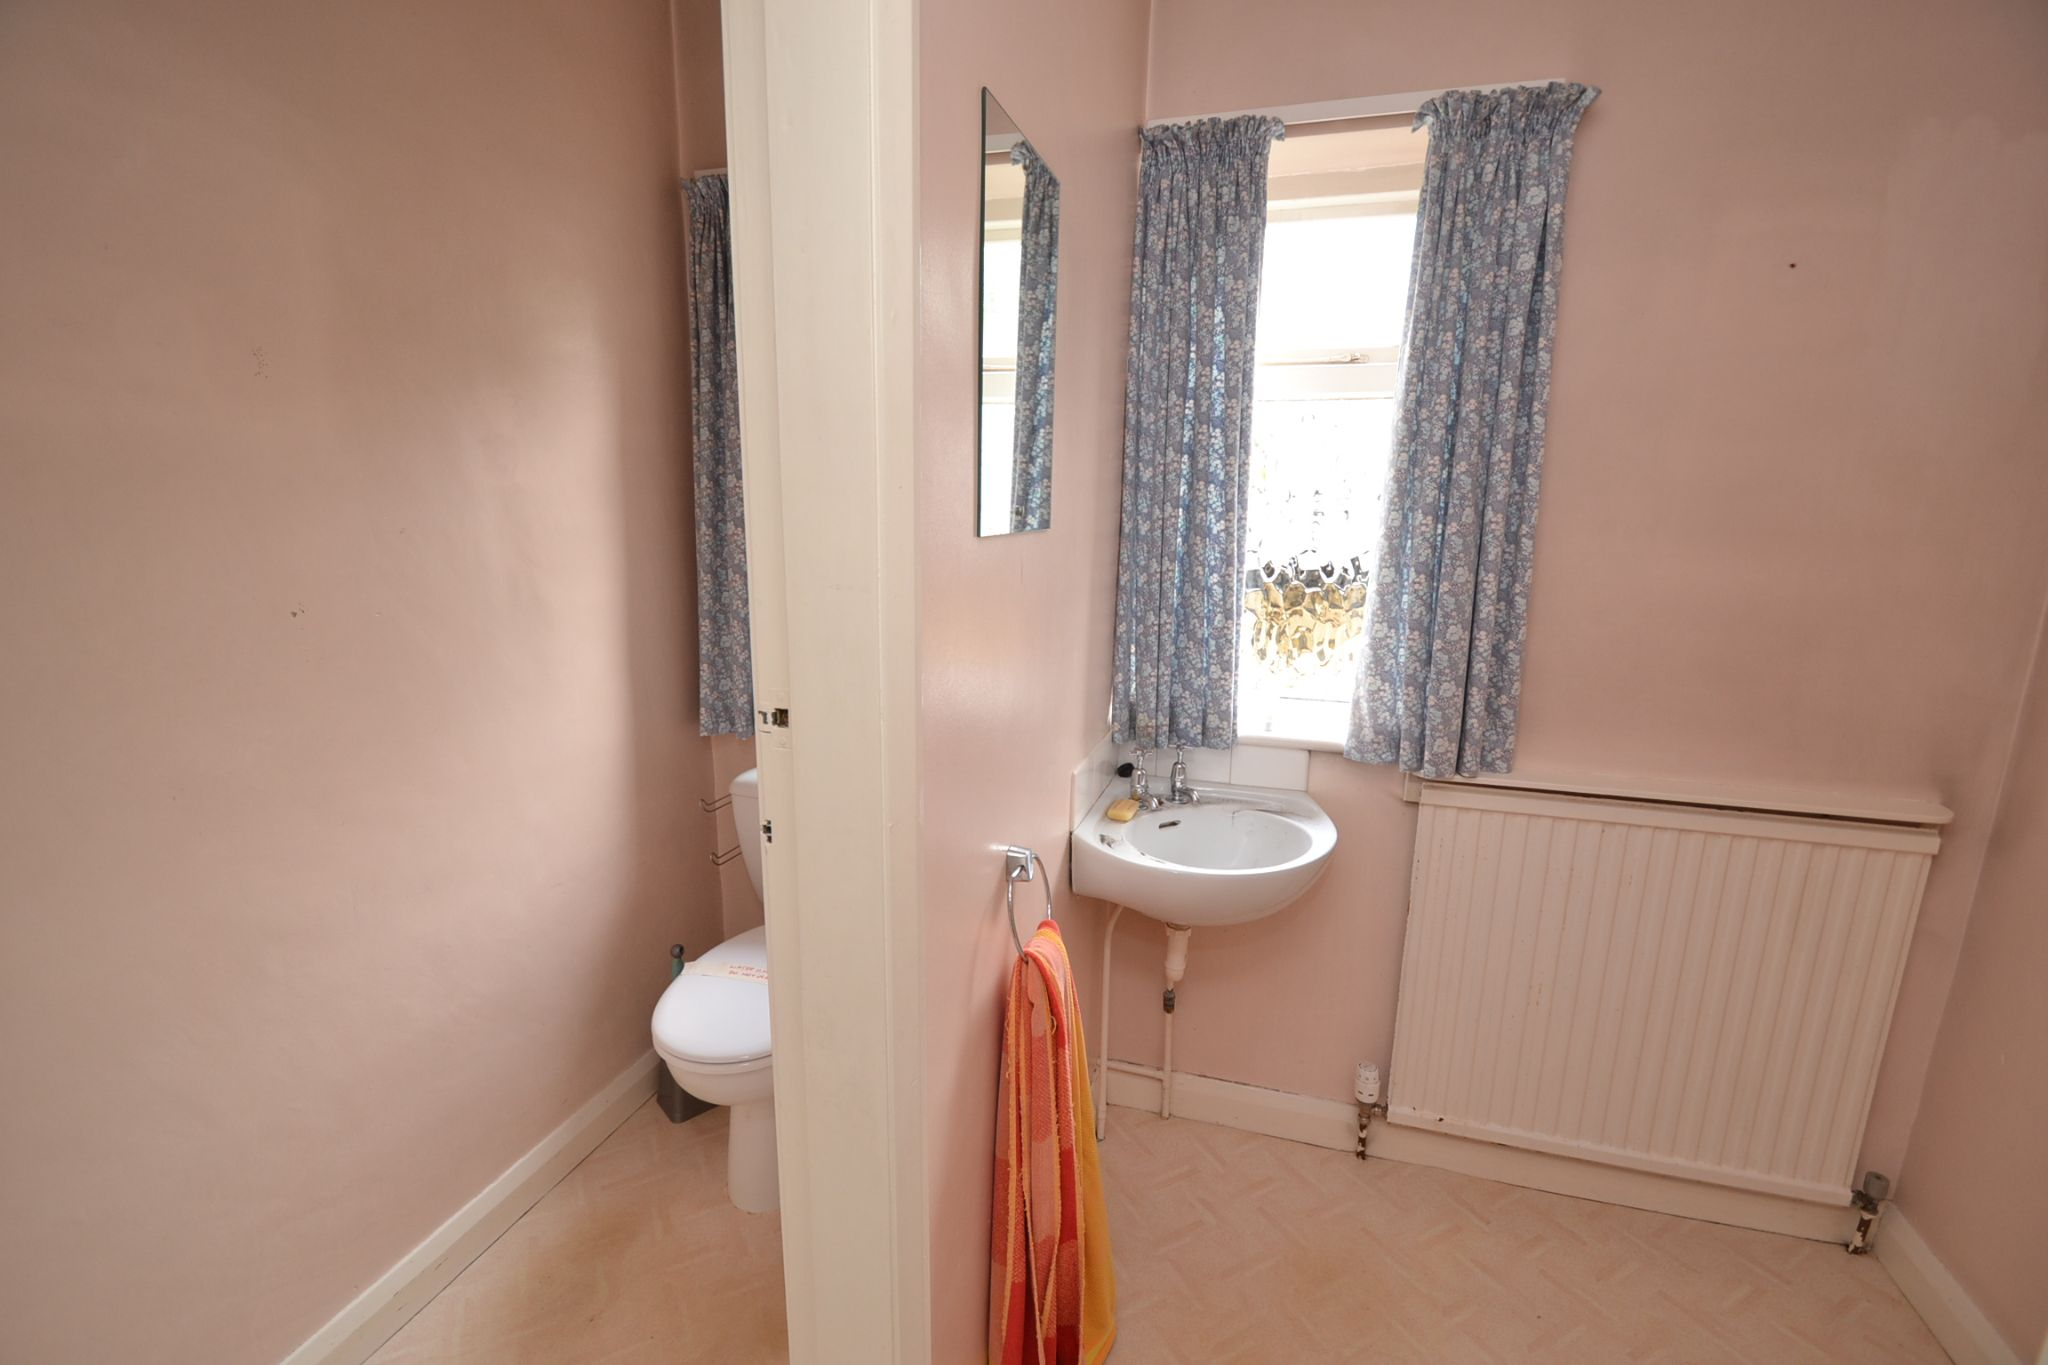 6 Bedroom Semi-detached House For Sale - Photograph 13